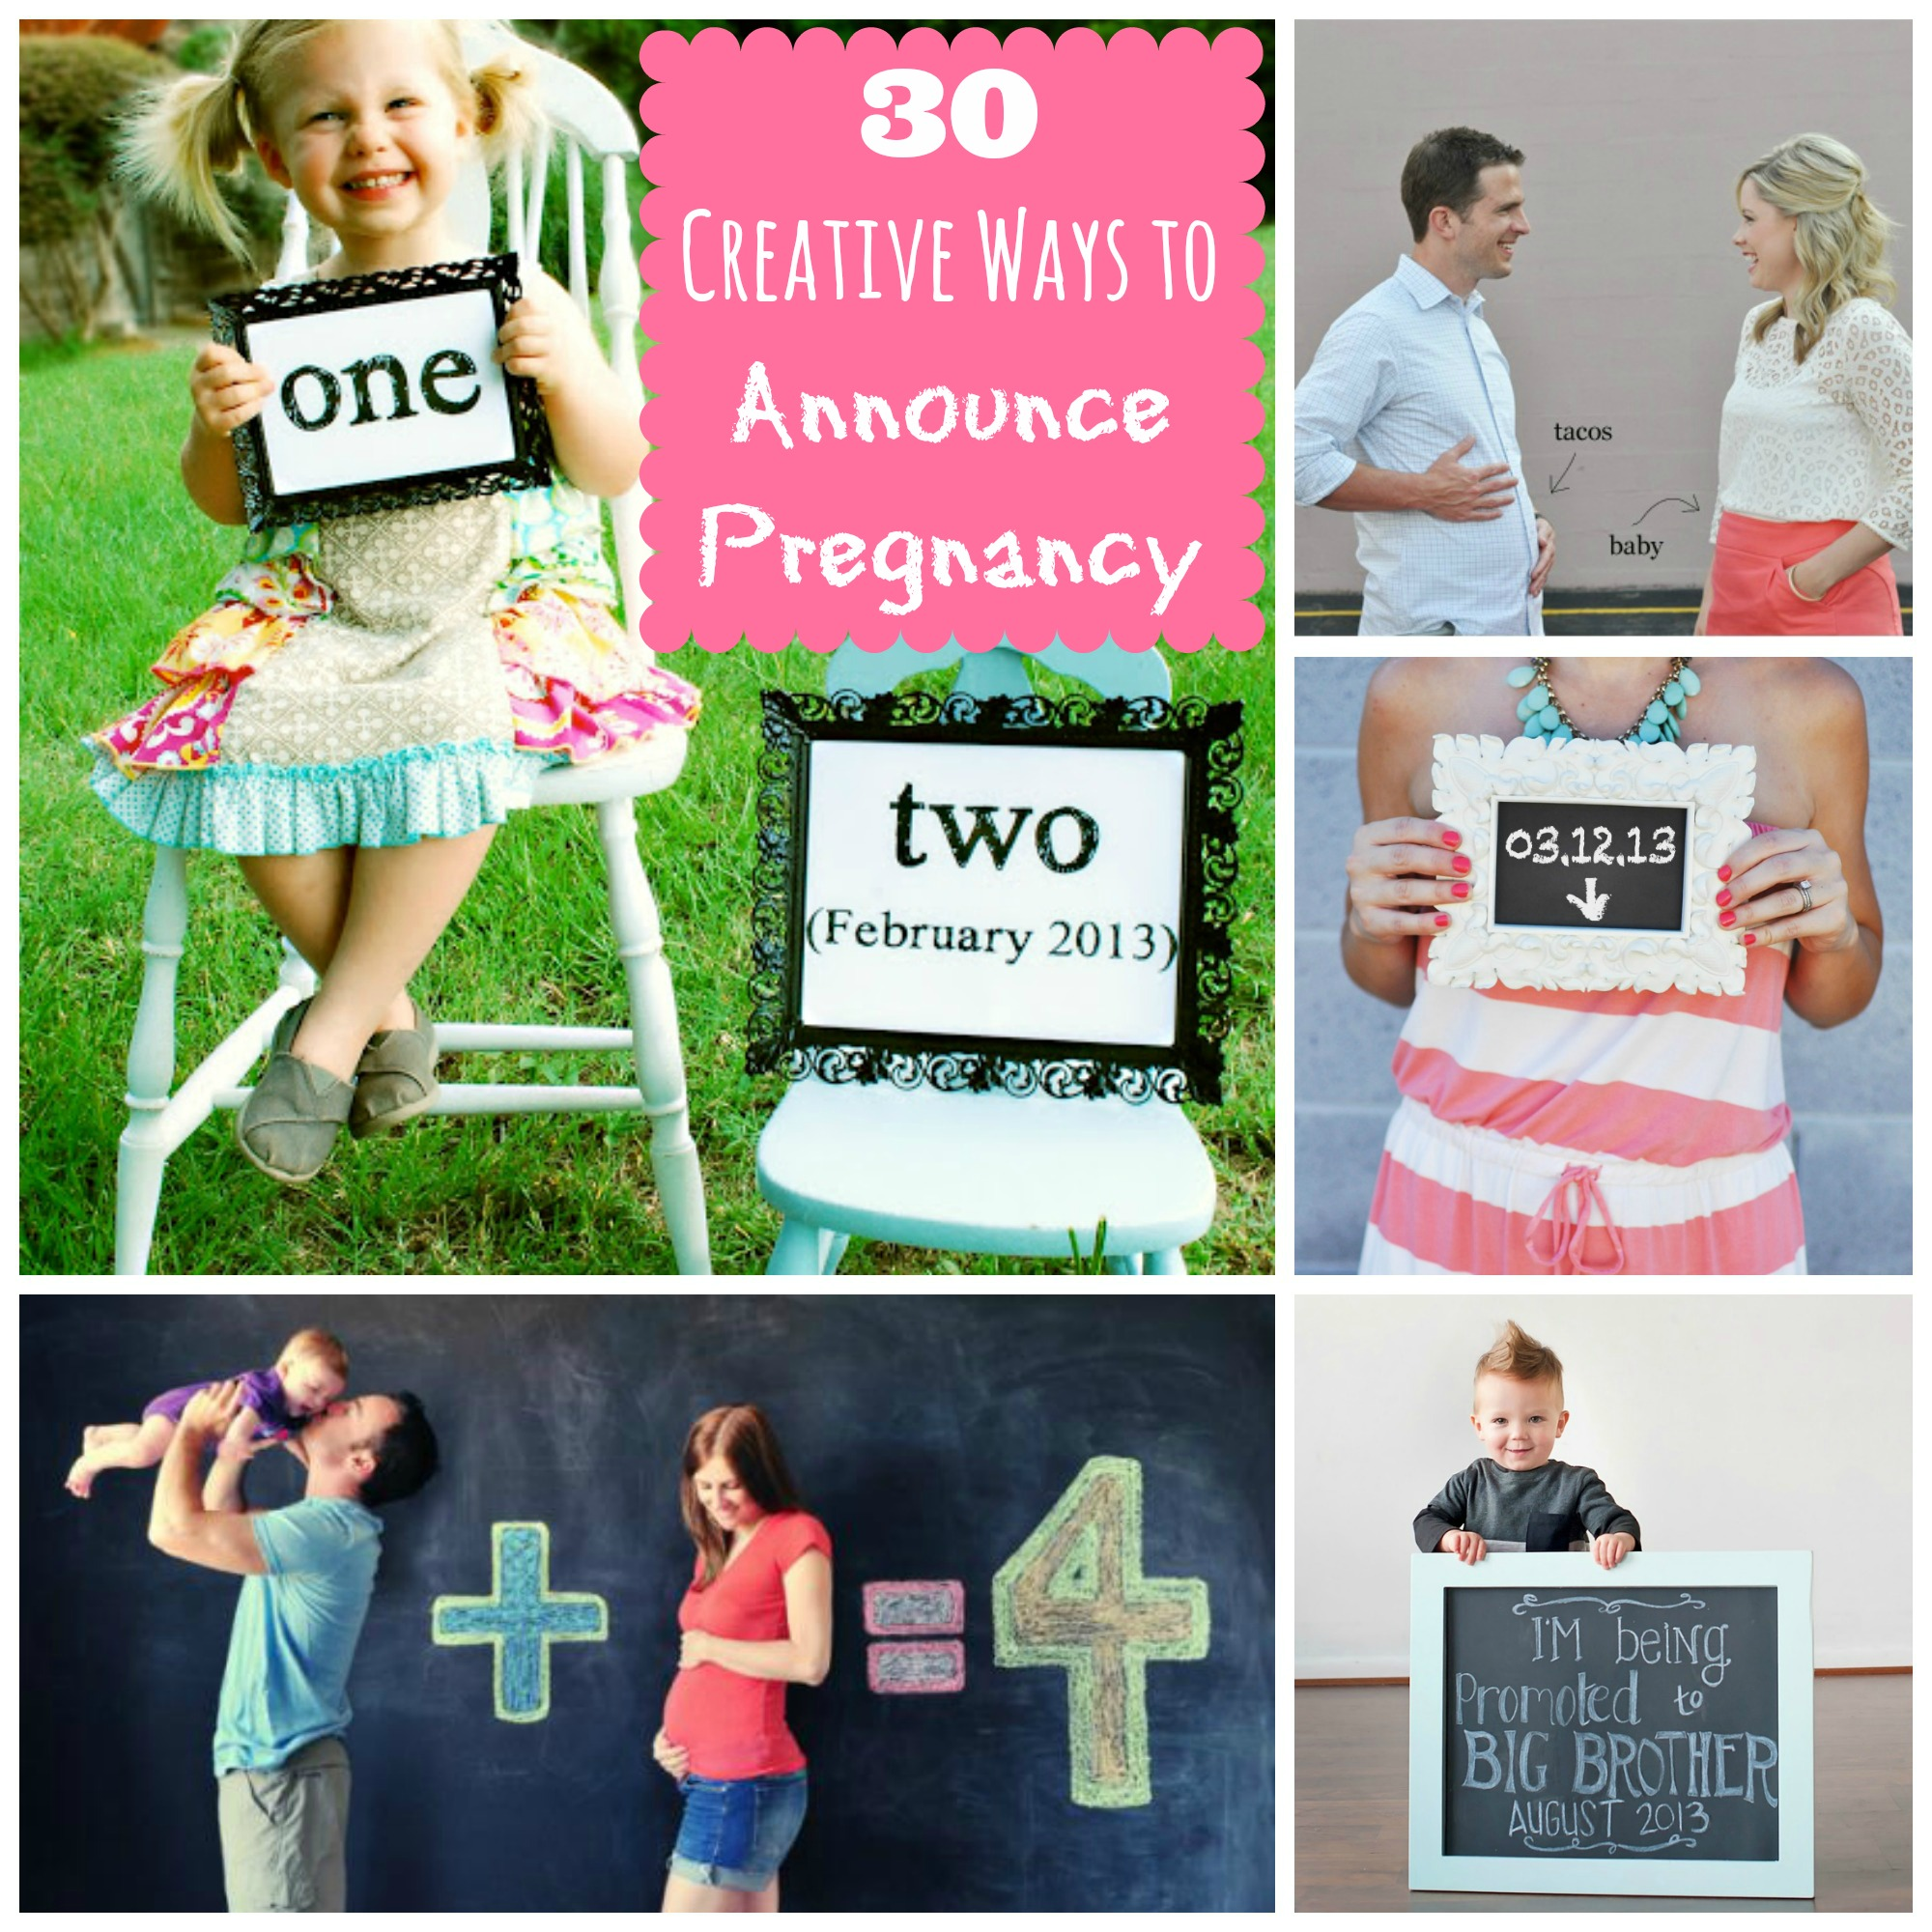 30 Creative Ways to Announce Pregnancy - Happy Home Fairy